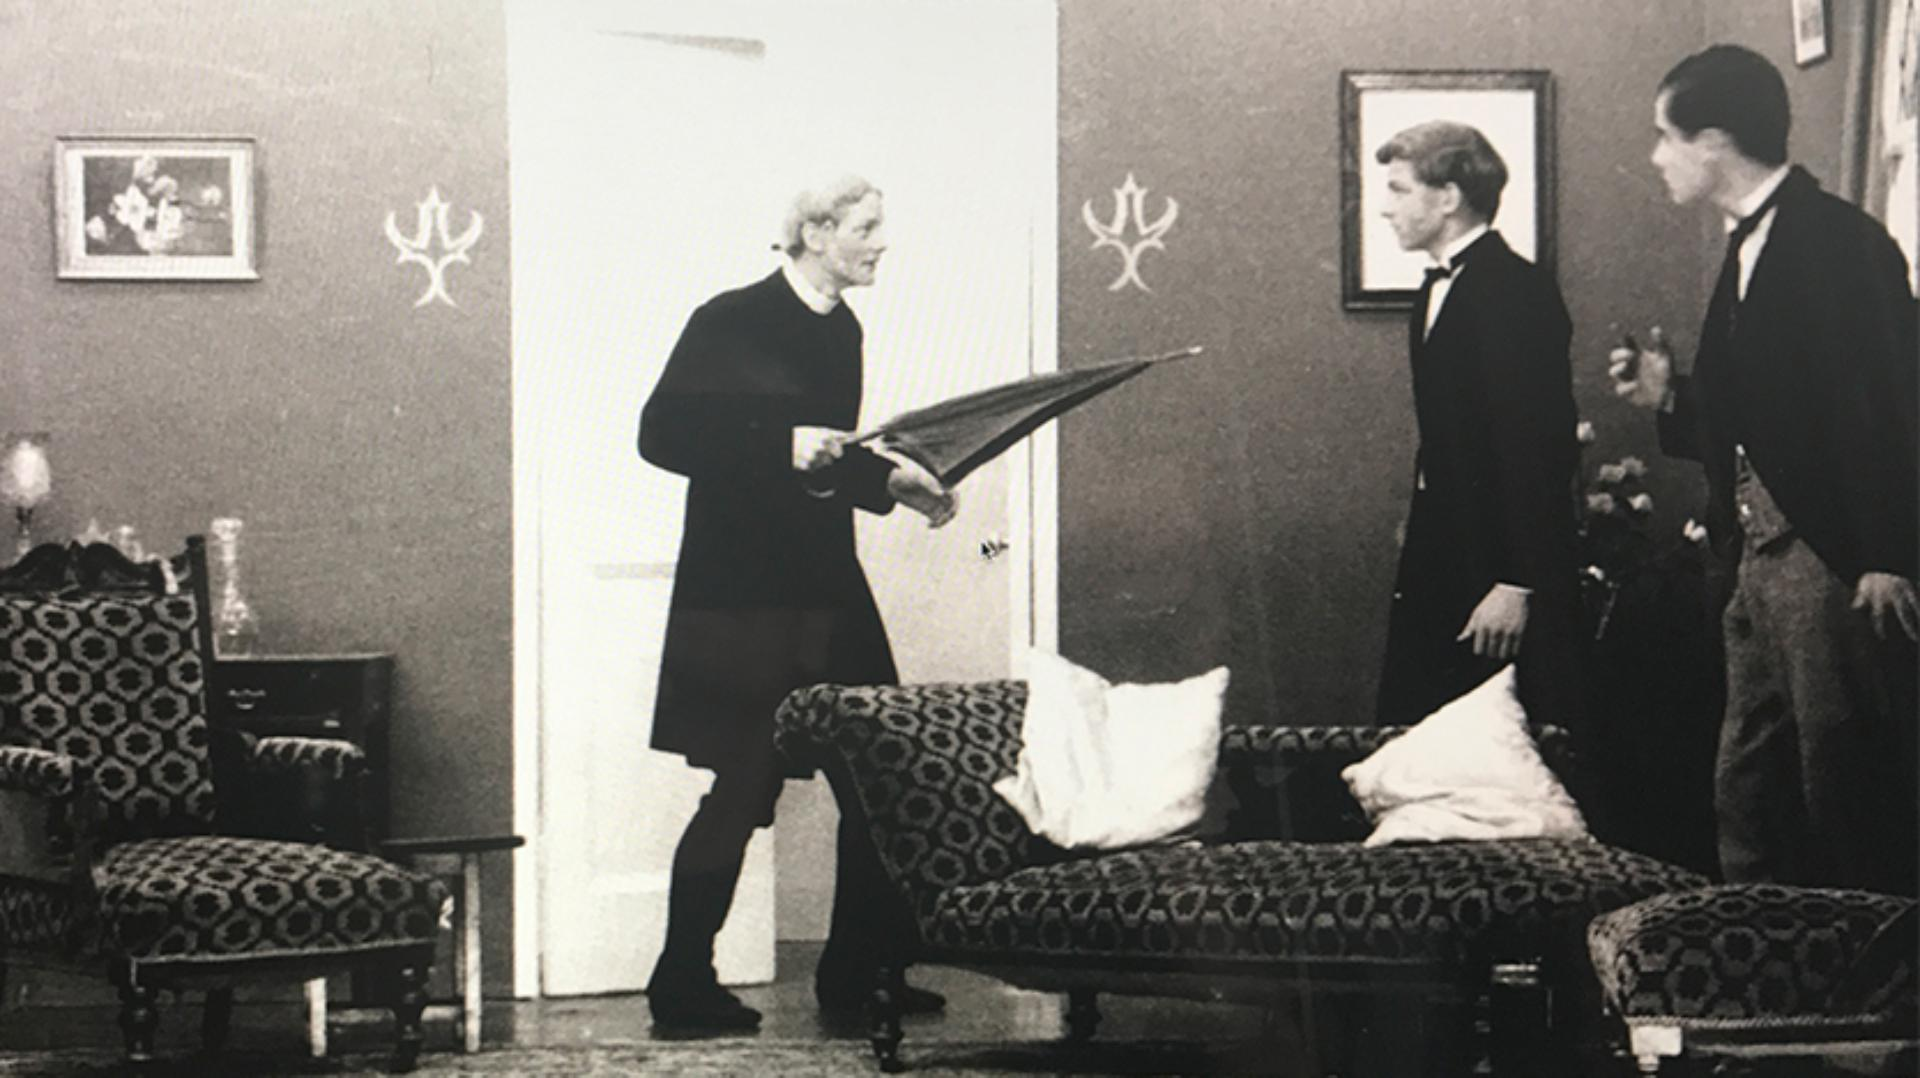 James Dyson on stage dressed in Victorian attire